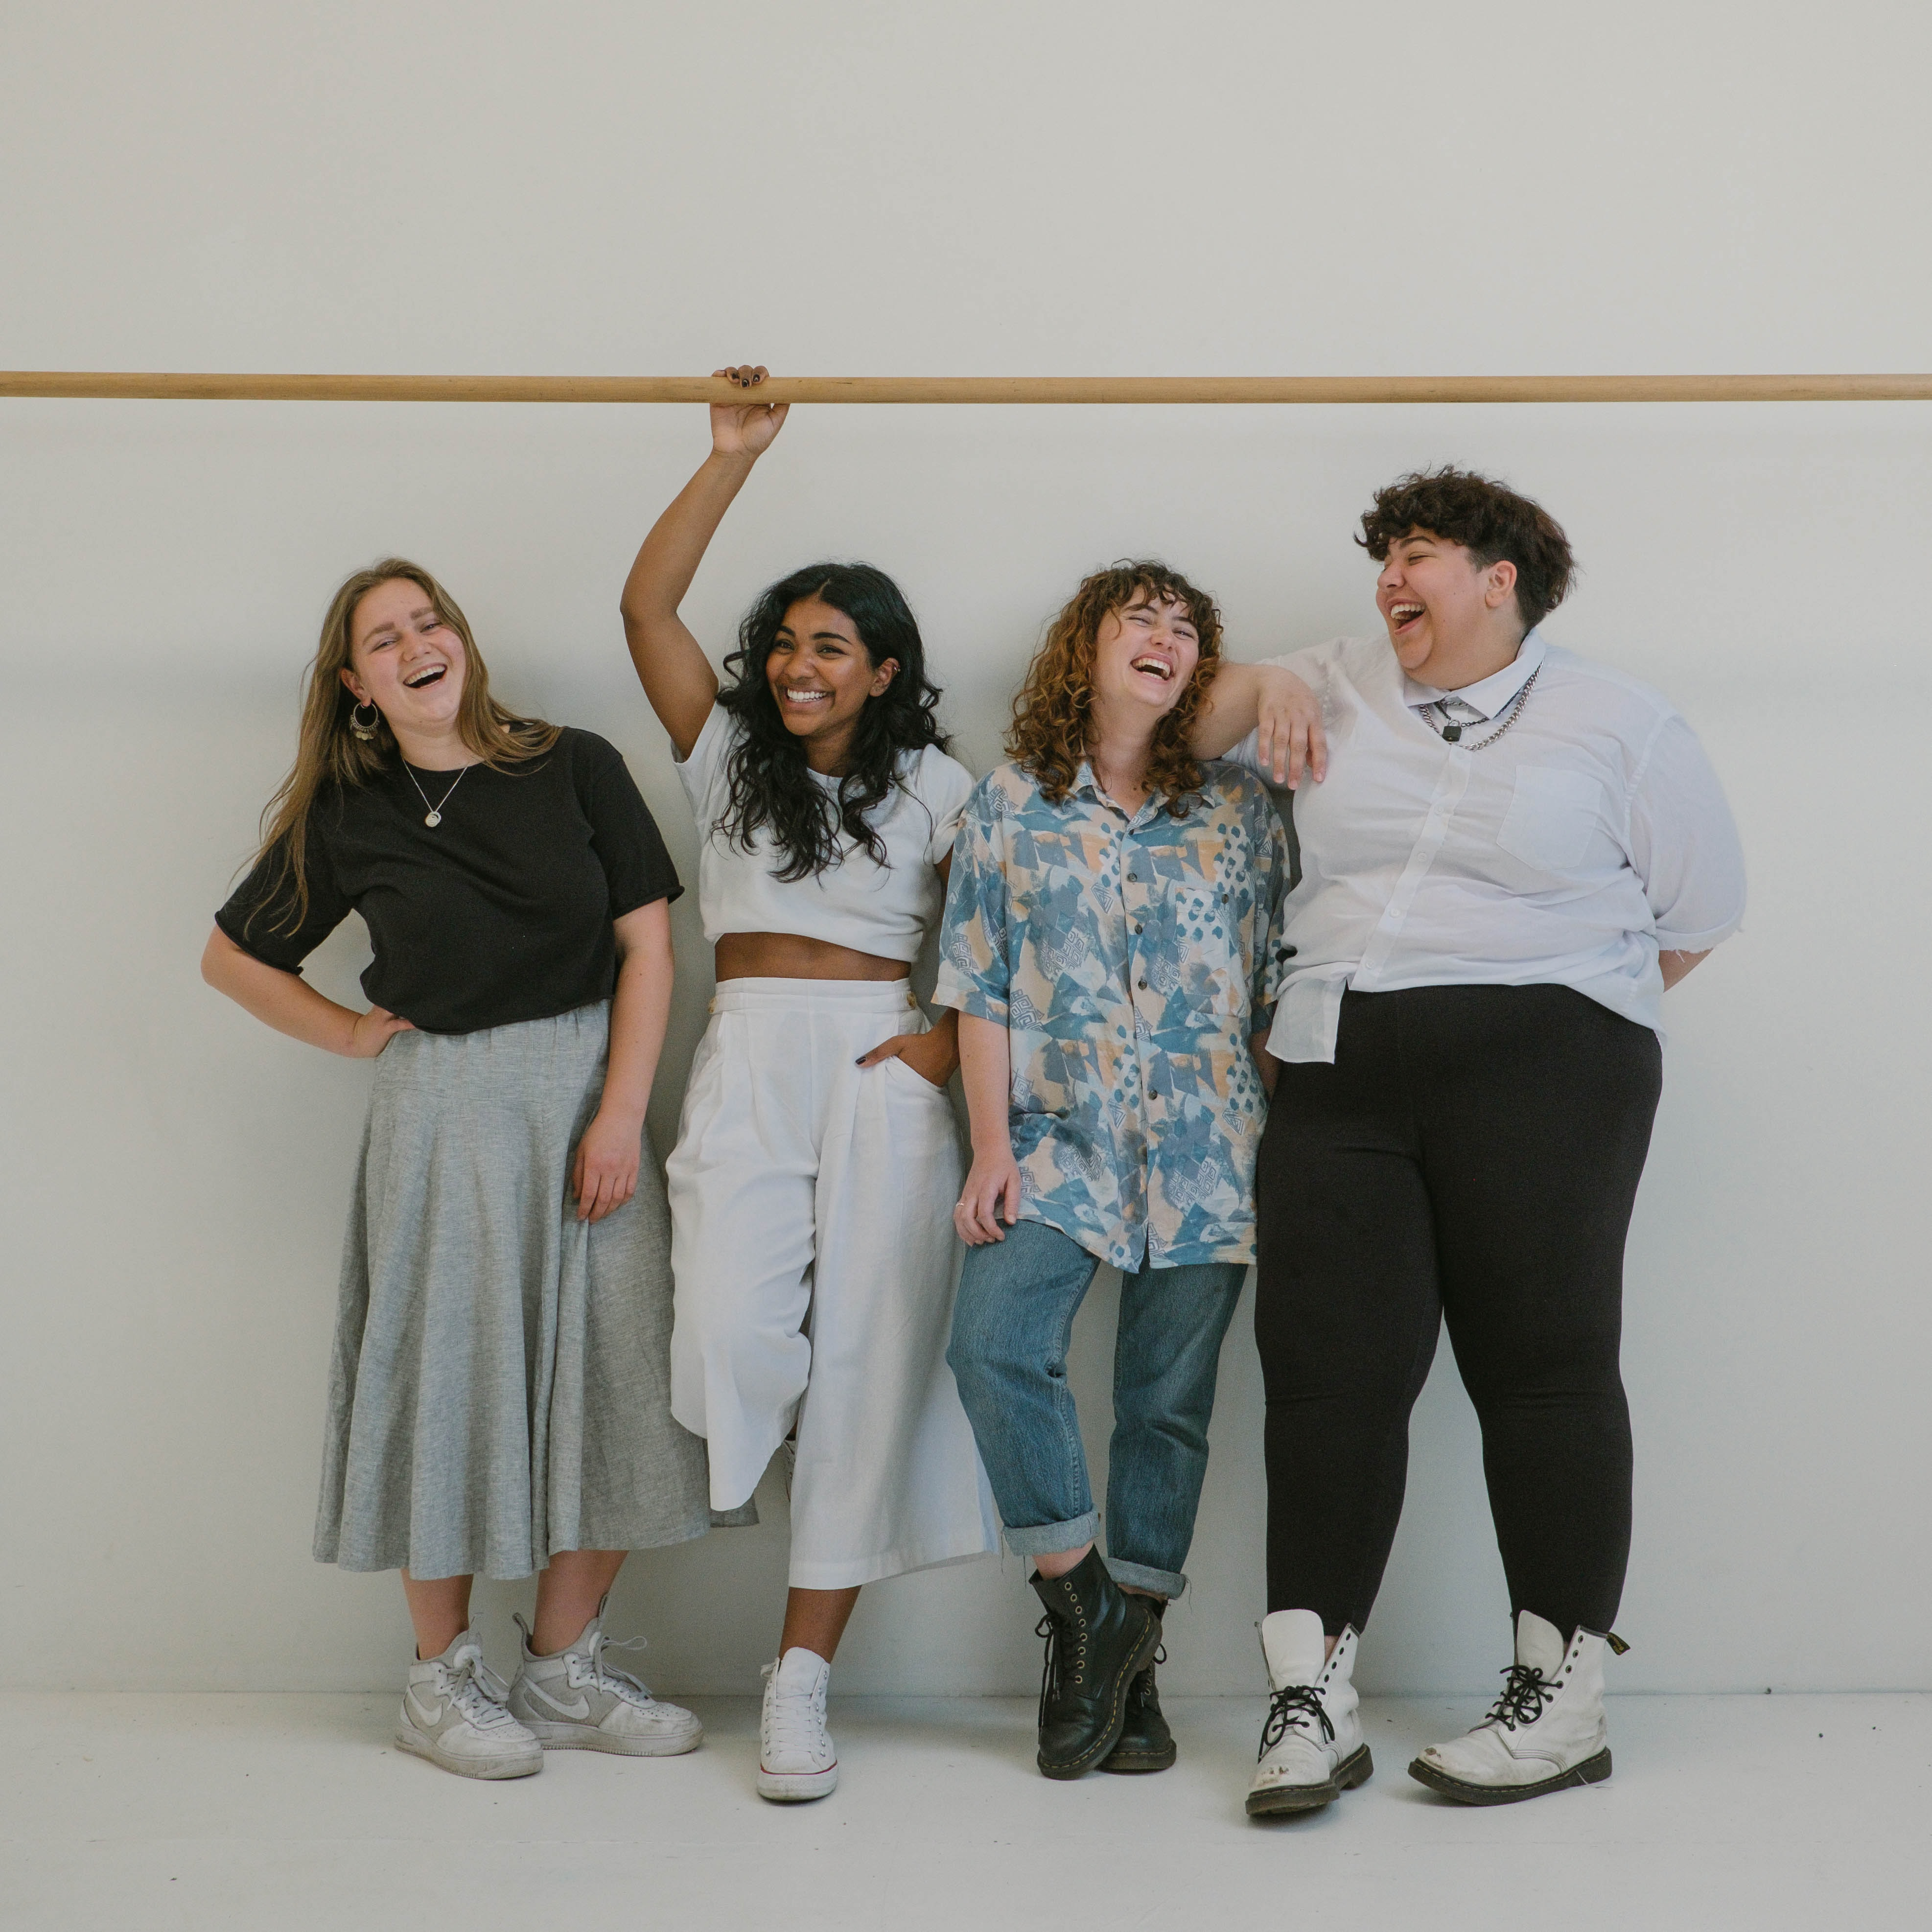 Different sized women standing